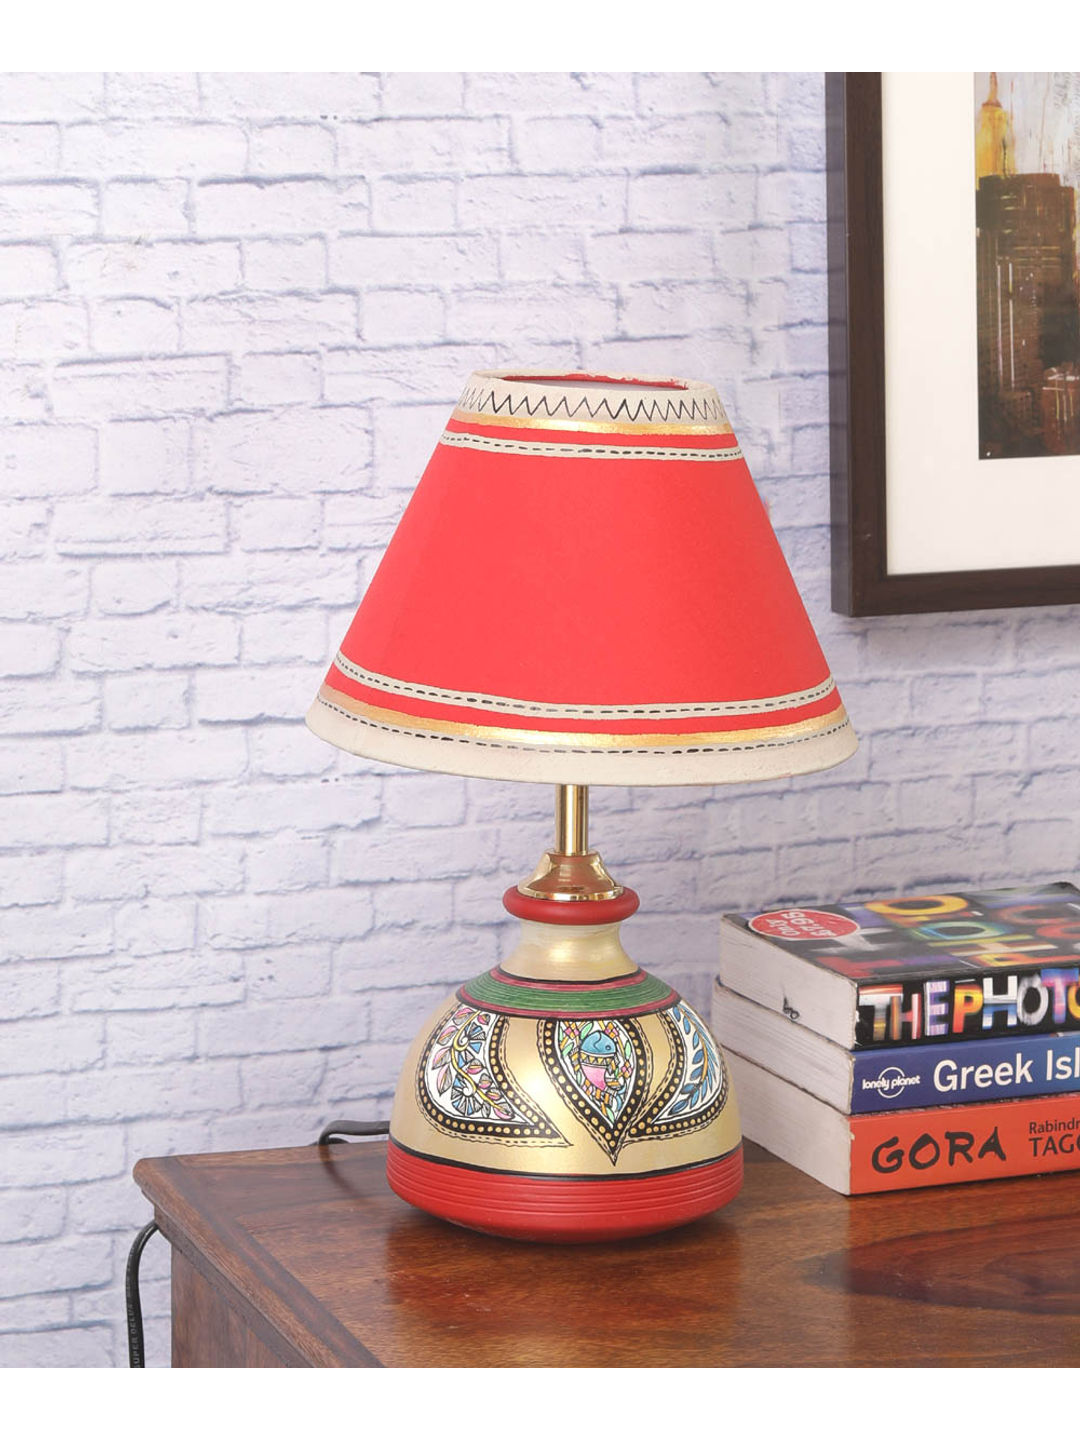 Madhubani multicolored terracotta lamp vacl025 madhubani multicolored terracotta lamp aloadofball Image collections